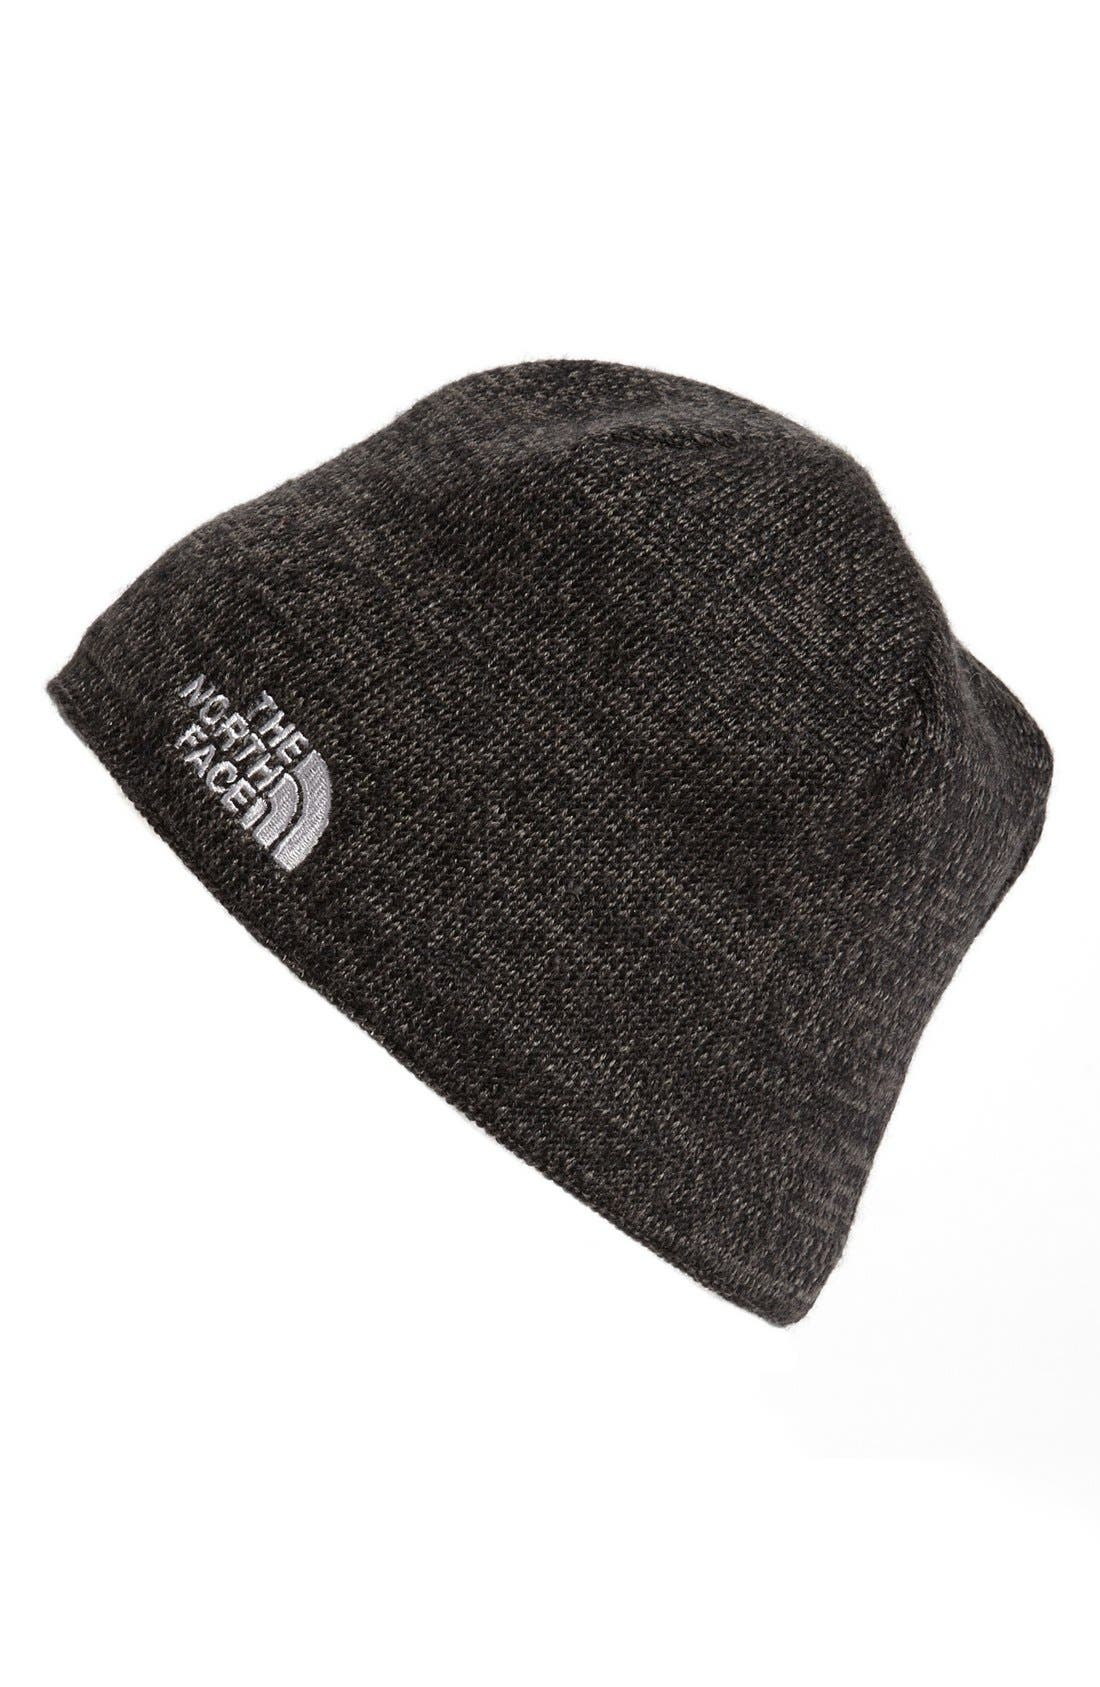 Alternate Image 1 Selected - The North Face 'Jim' Beanie